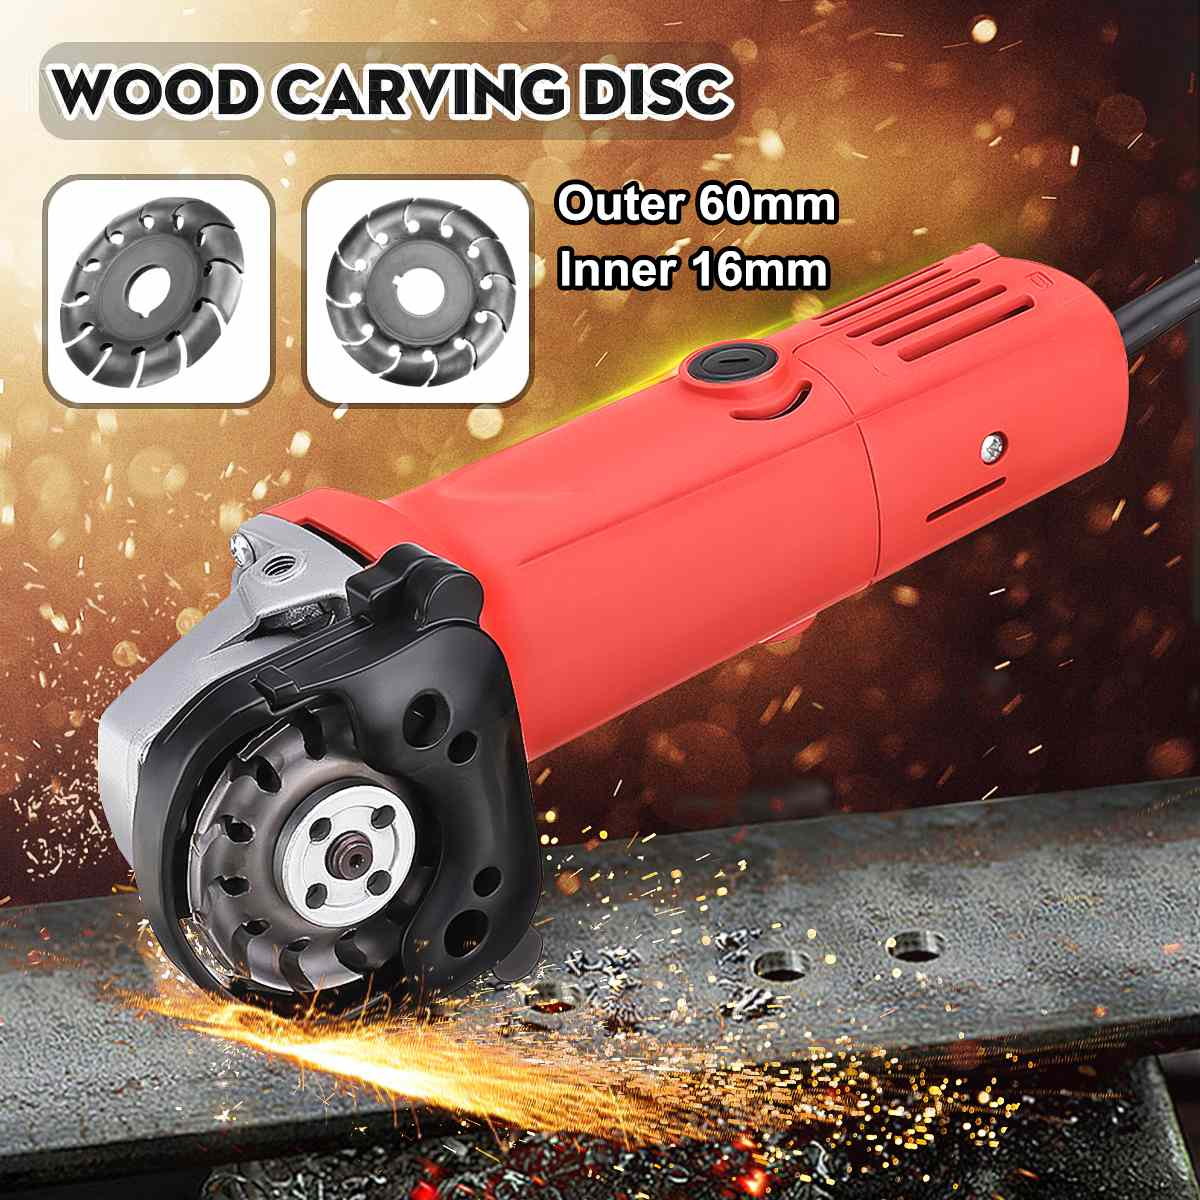 Outer 60mm Wood Carving Disc Cutting Shaping Blade With Cover For 16mm Angle Grinder Woodworking Cutting Power Tools